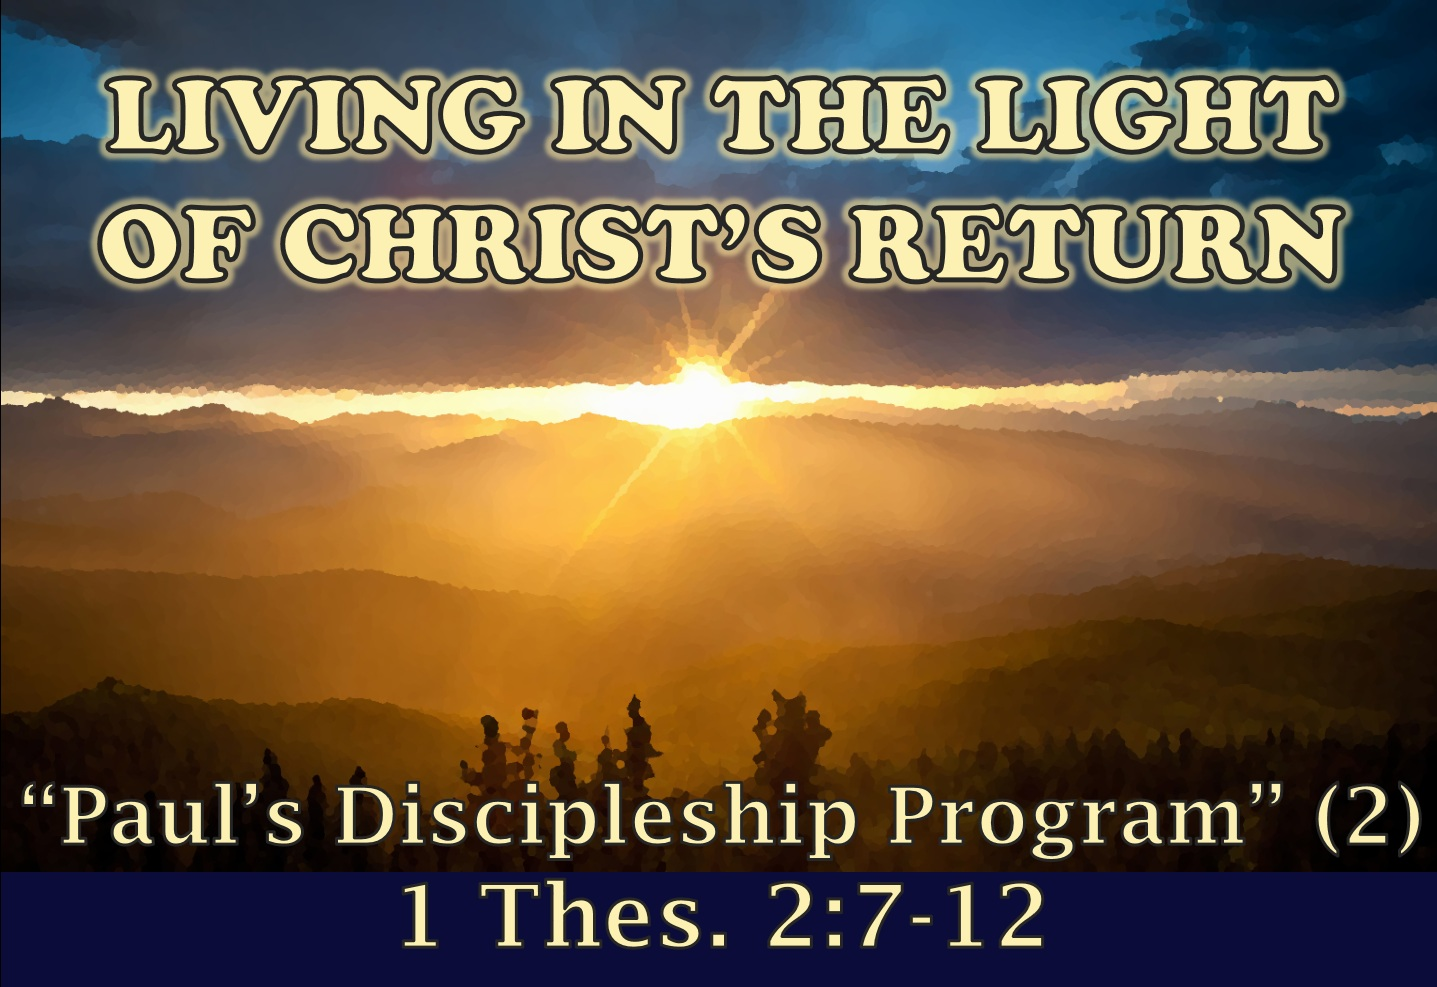 Paul's Discipleship Program (2)